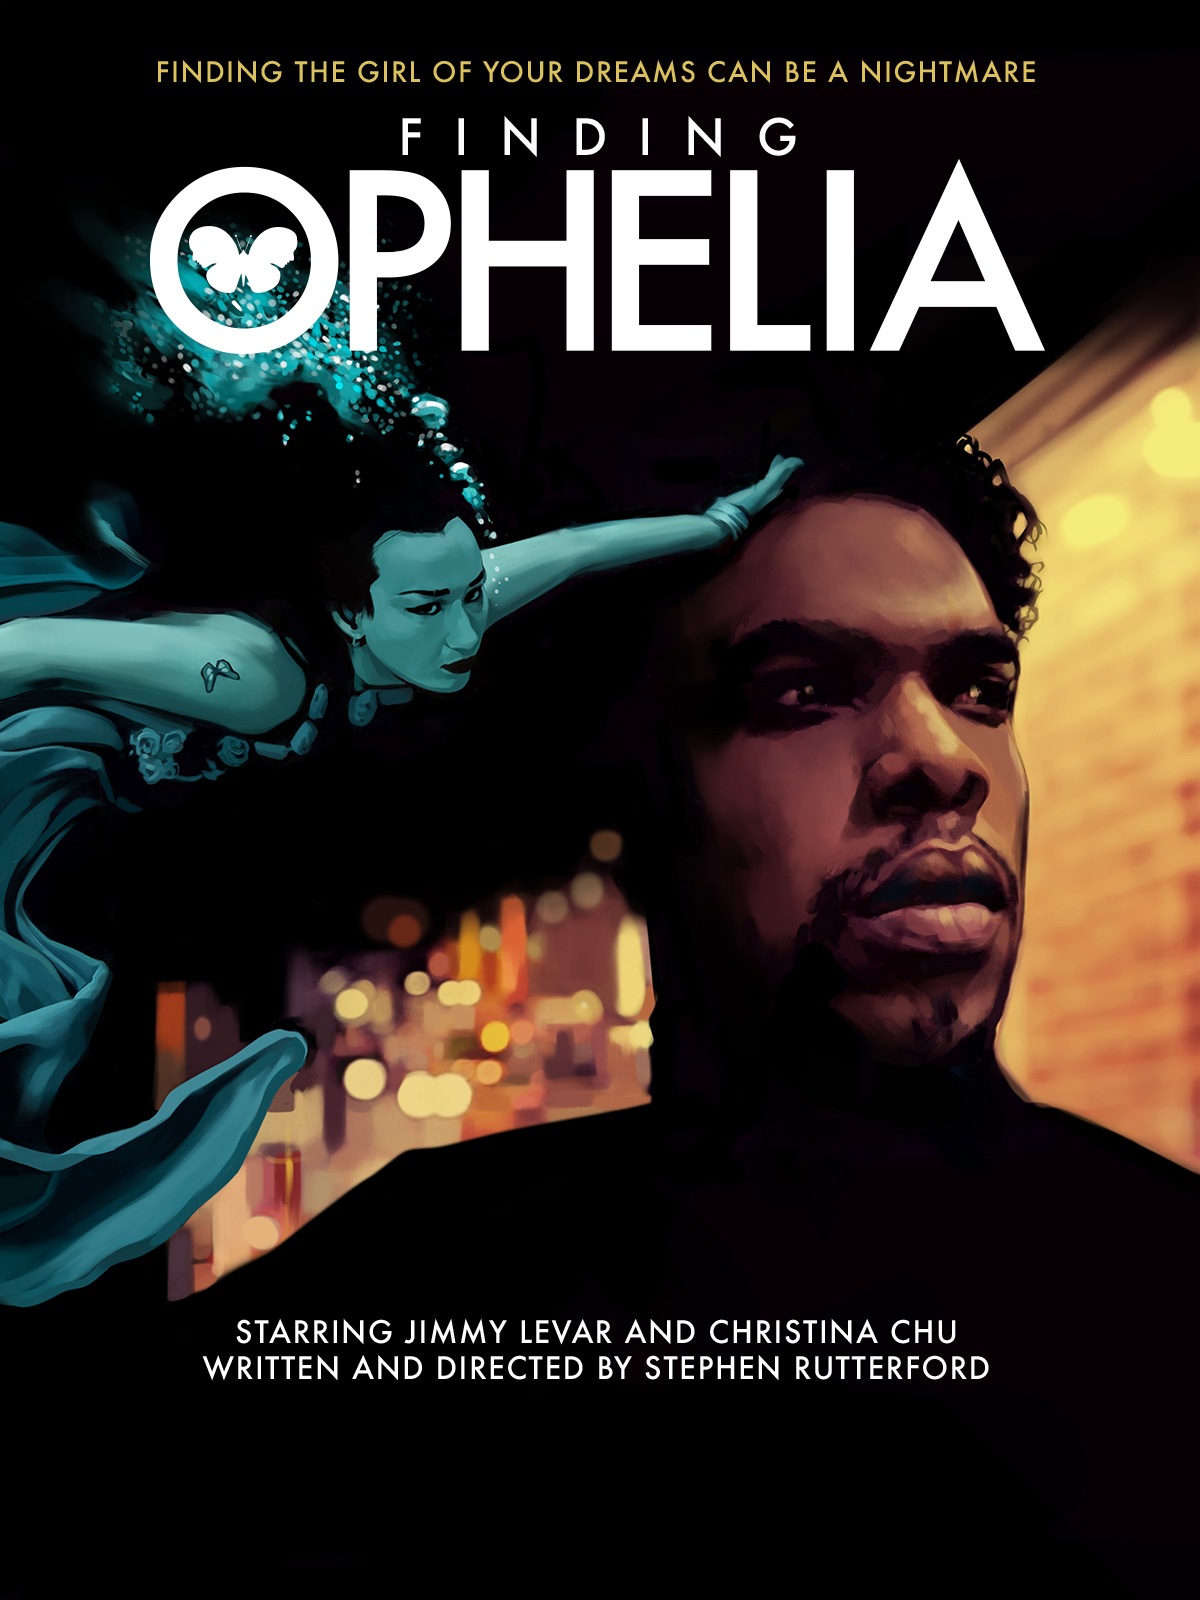 Download Finding Ophelia (2021) WebRip 720p Full Movie [In English] With Hindi Subtitles Full Movie Online On 1xcinema.com